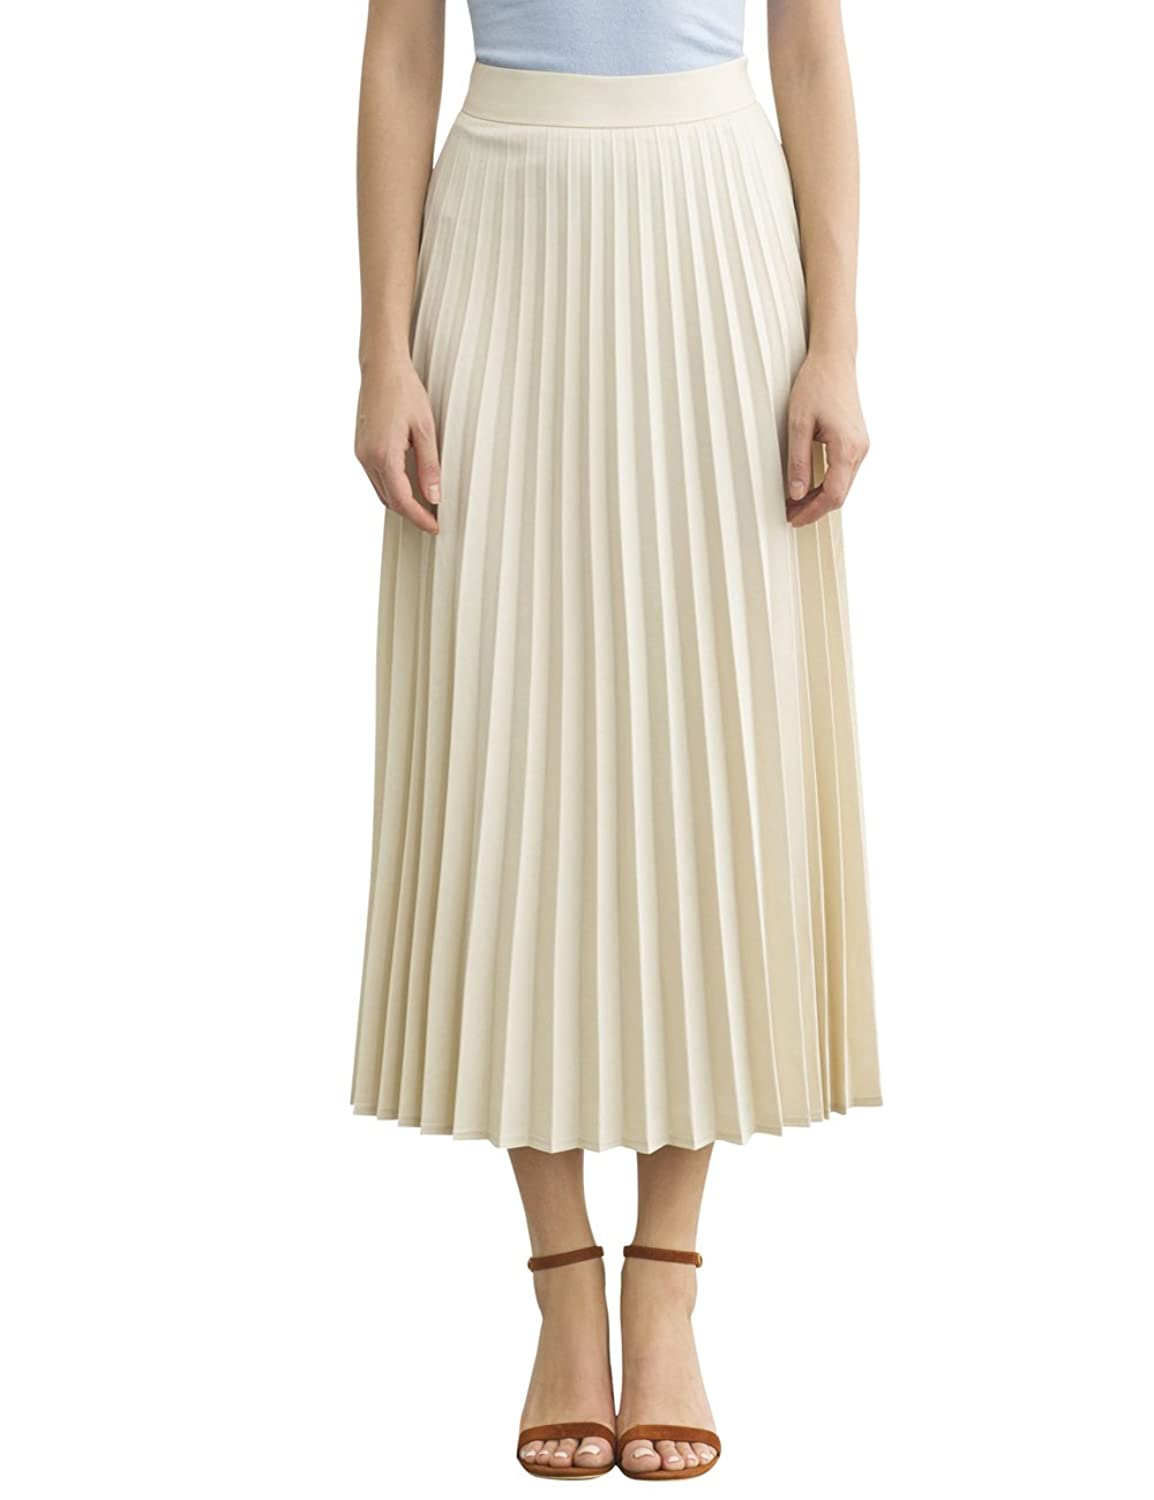 1920s Style Skirts Simple Retro Womens High Waist Basic Pleated A-line Midi Skirt $24.99 AT vintagedancer.com